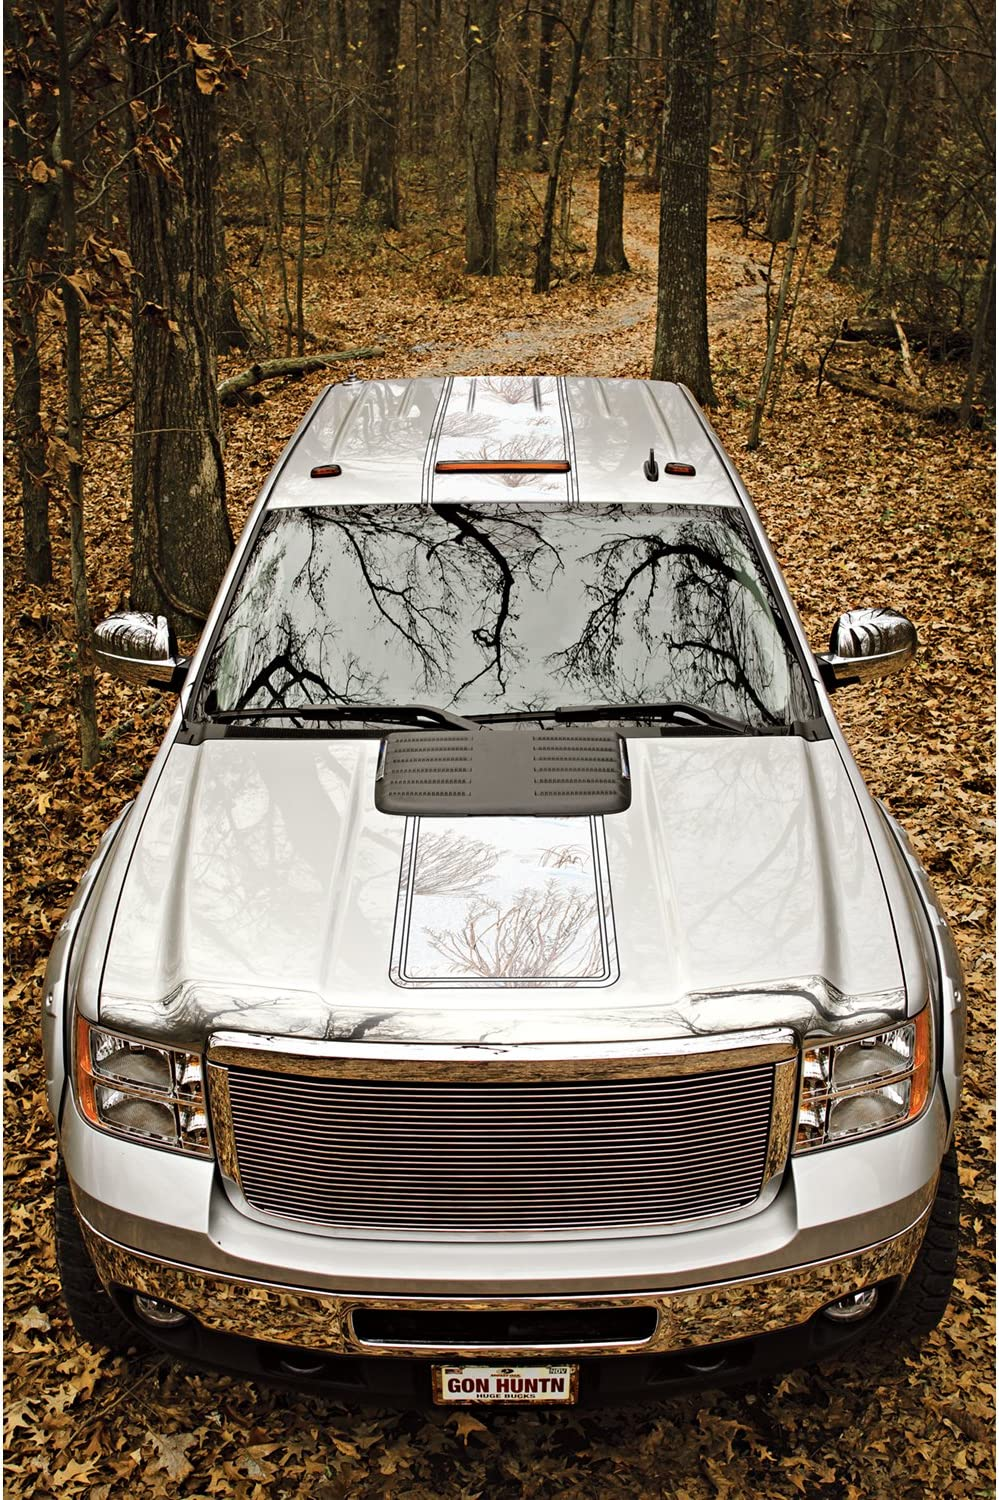 No-fade Hi-Def Single or Dual Many Patterns Mossy Oak Graphics Auto Stripe Decal Matte Finish Easy to Install Cast Vinyl